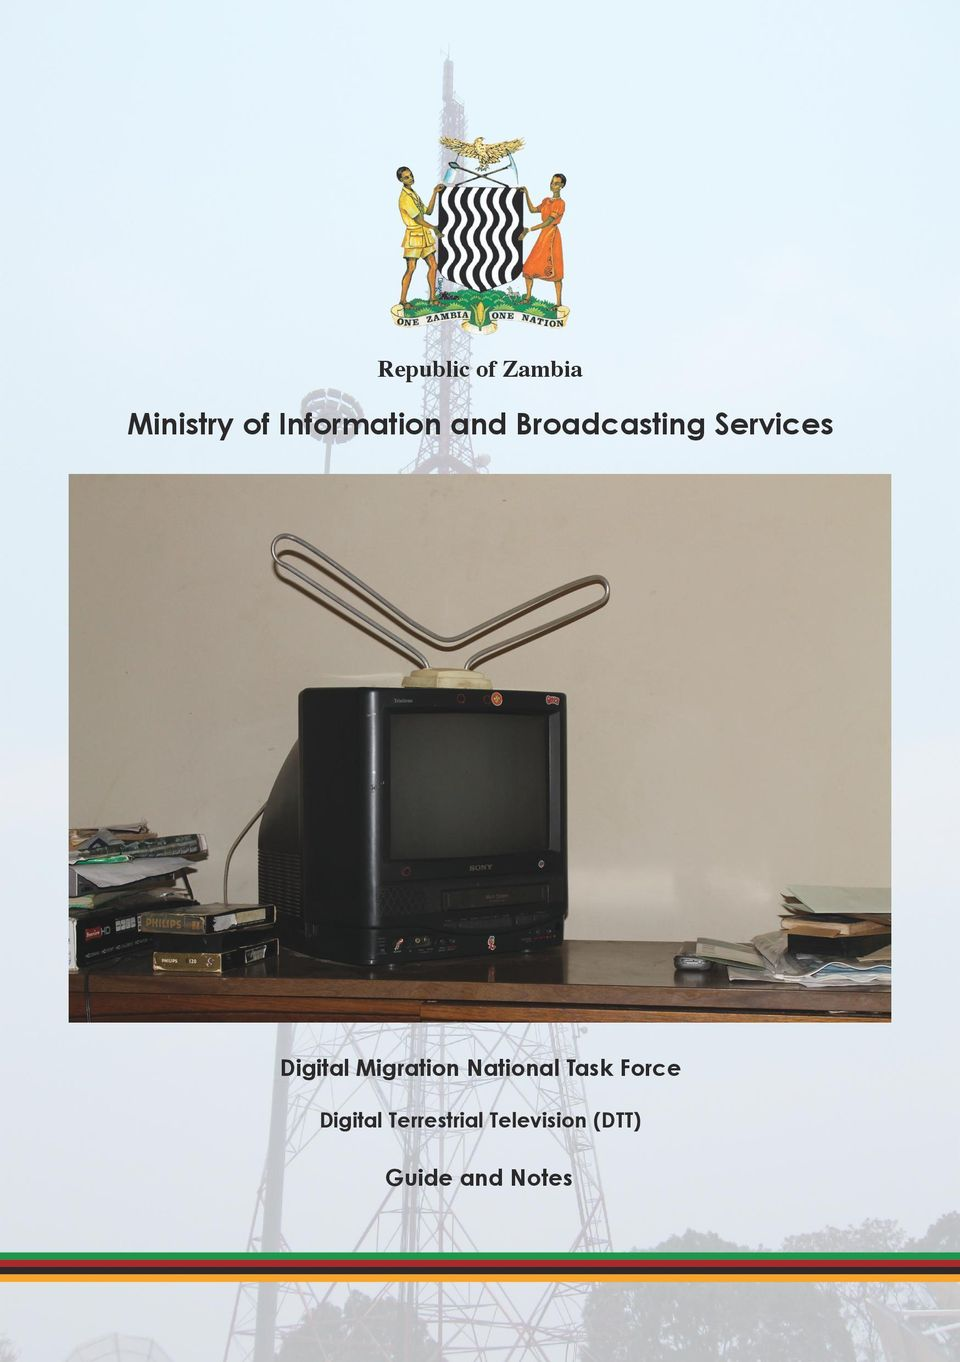 Digital Migration National Task Force